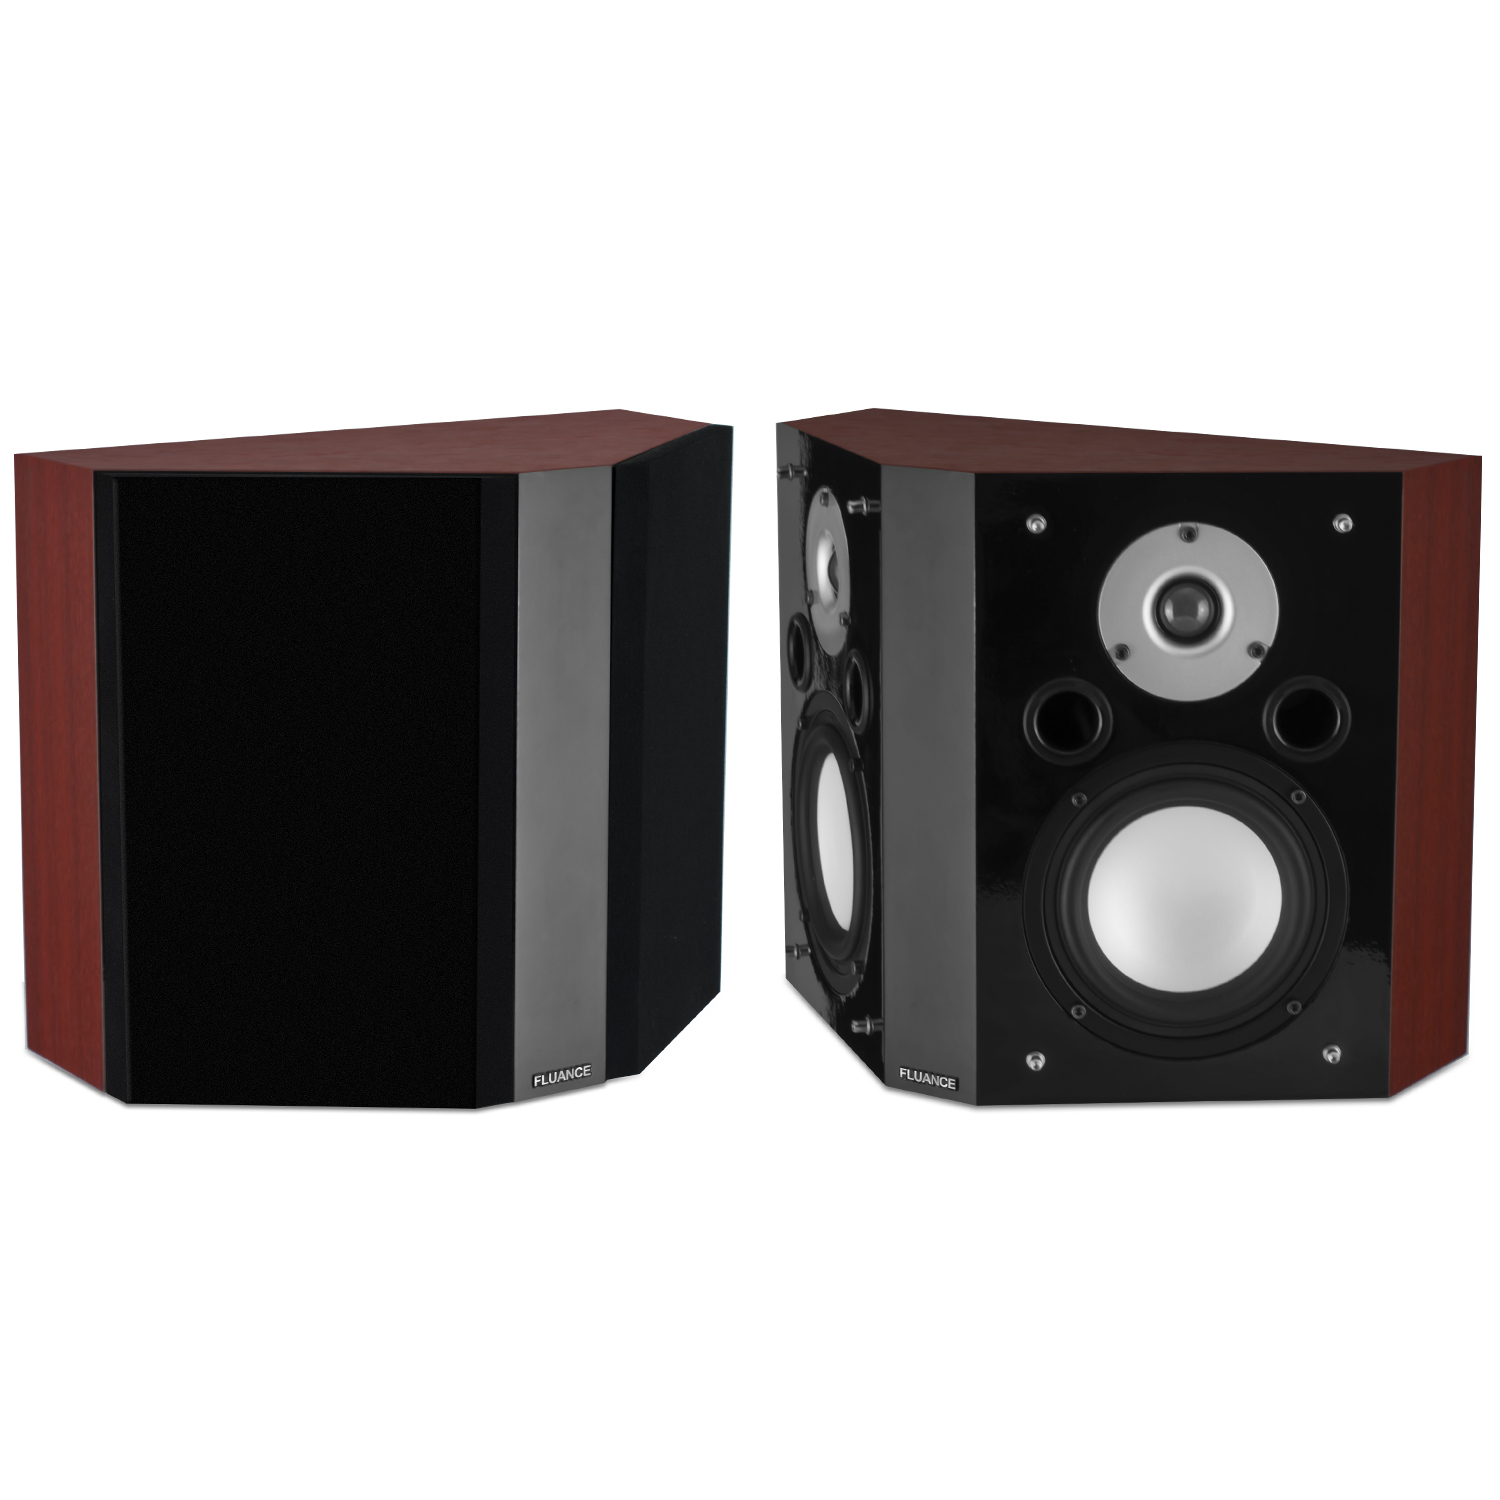 Fluance XLBP Wide Dispersion Bipolar Surround Sound Speakers for Home Theater by Fluance